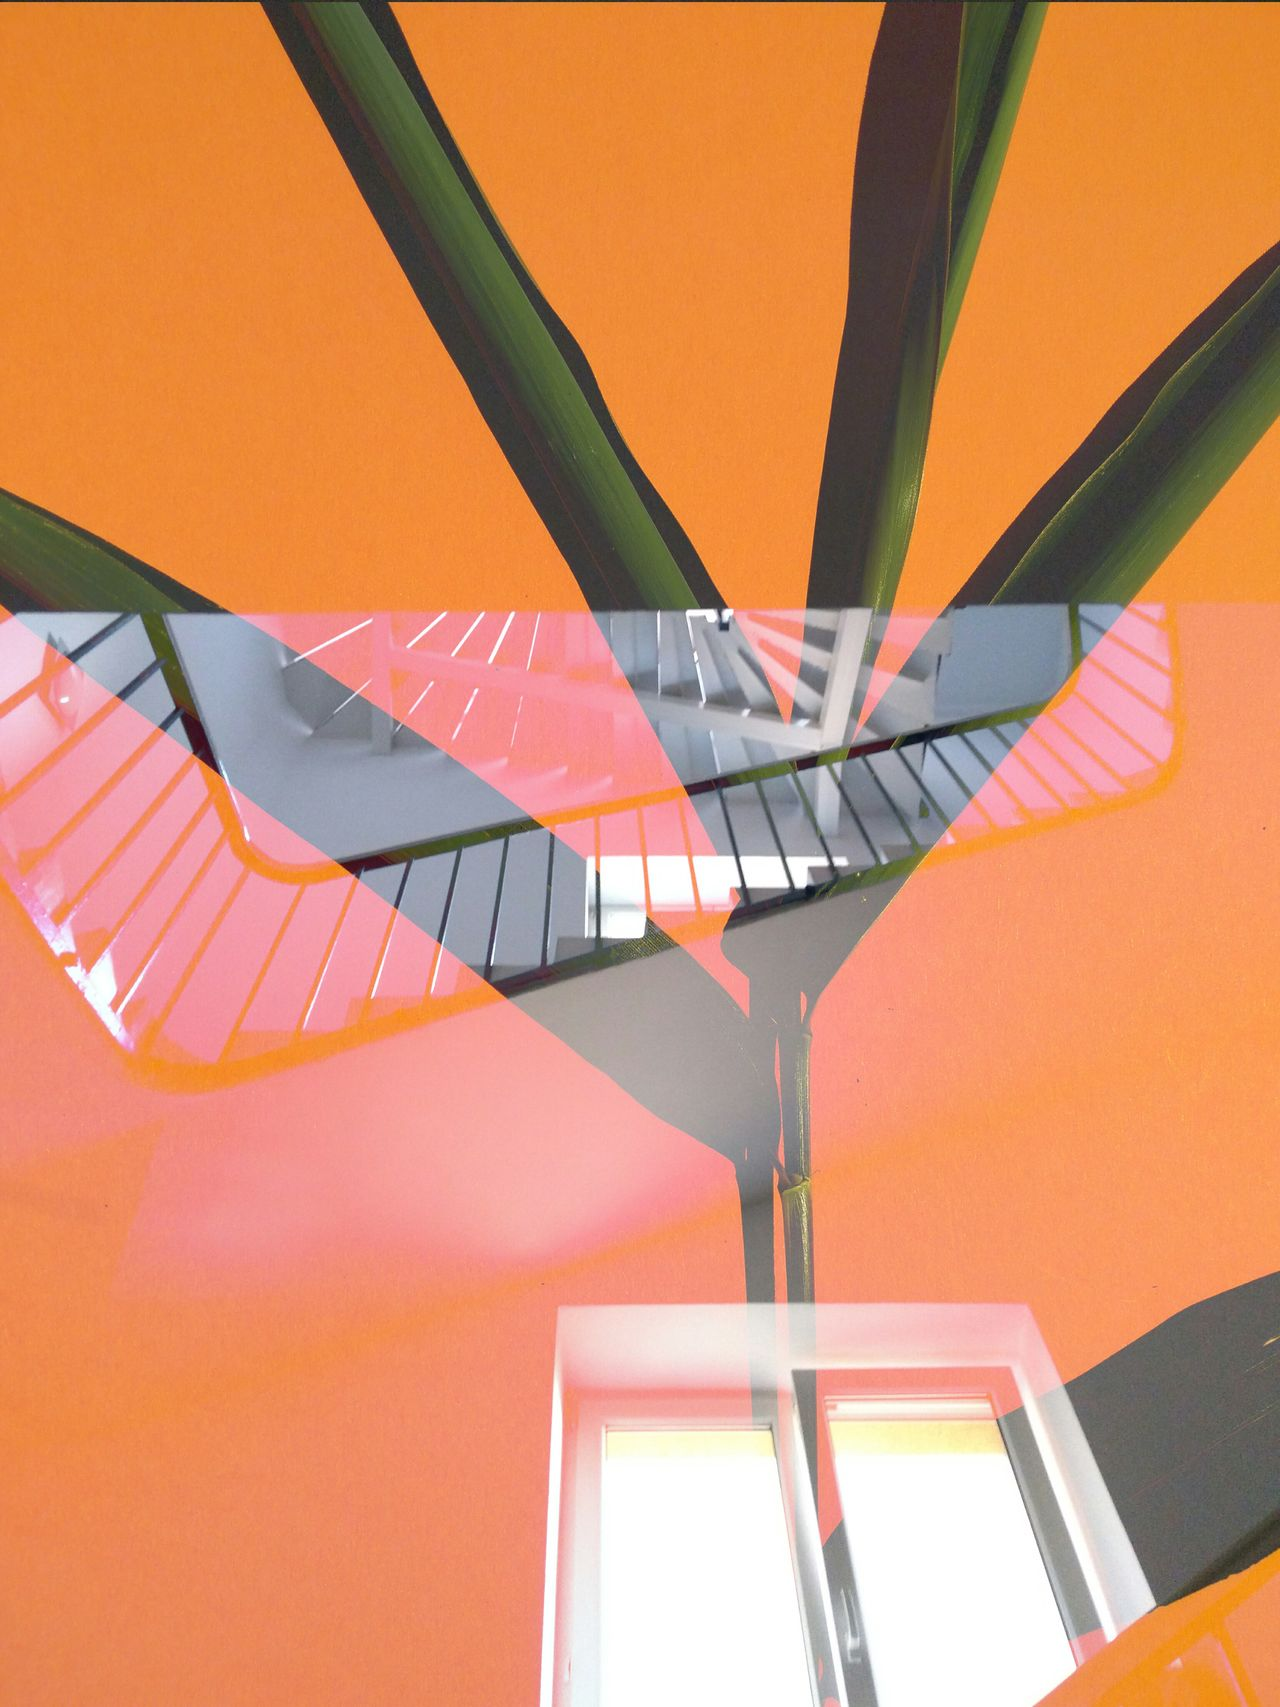 Spiral Stairs Steps And Staircases Spiral Steps Railing Architecture Built Structure Spiral Staircase Design Orange Color Orange Negative Space Leaves Natural Vs Artificial Graphic Design Double Exposure Collage Cut And Paste